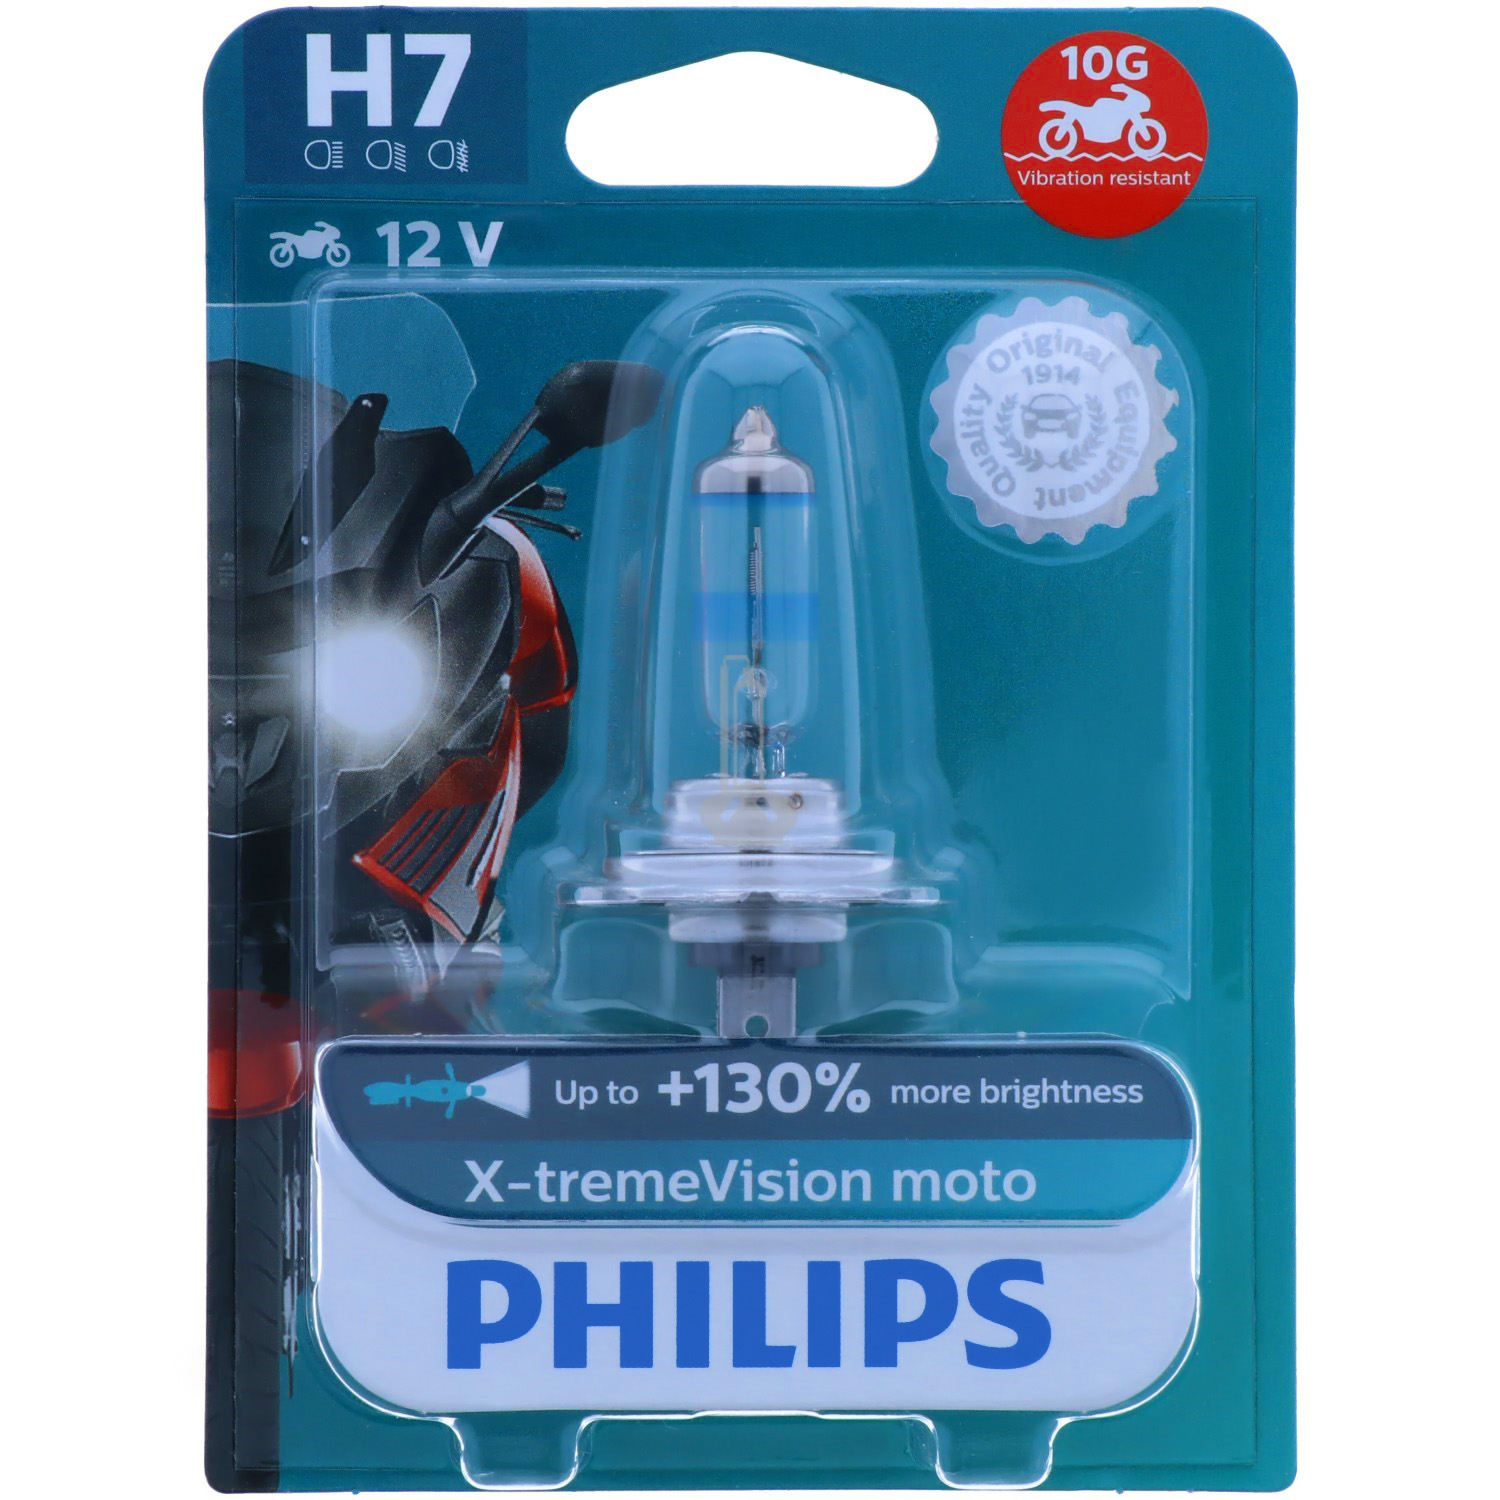 H7 PHILIPS X-tremeVision Moto - maximale Leistung